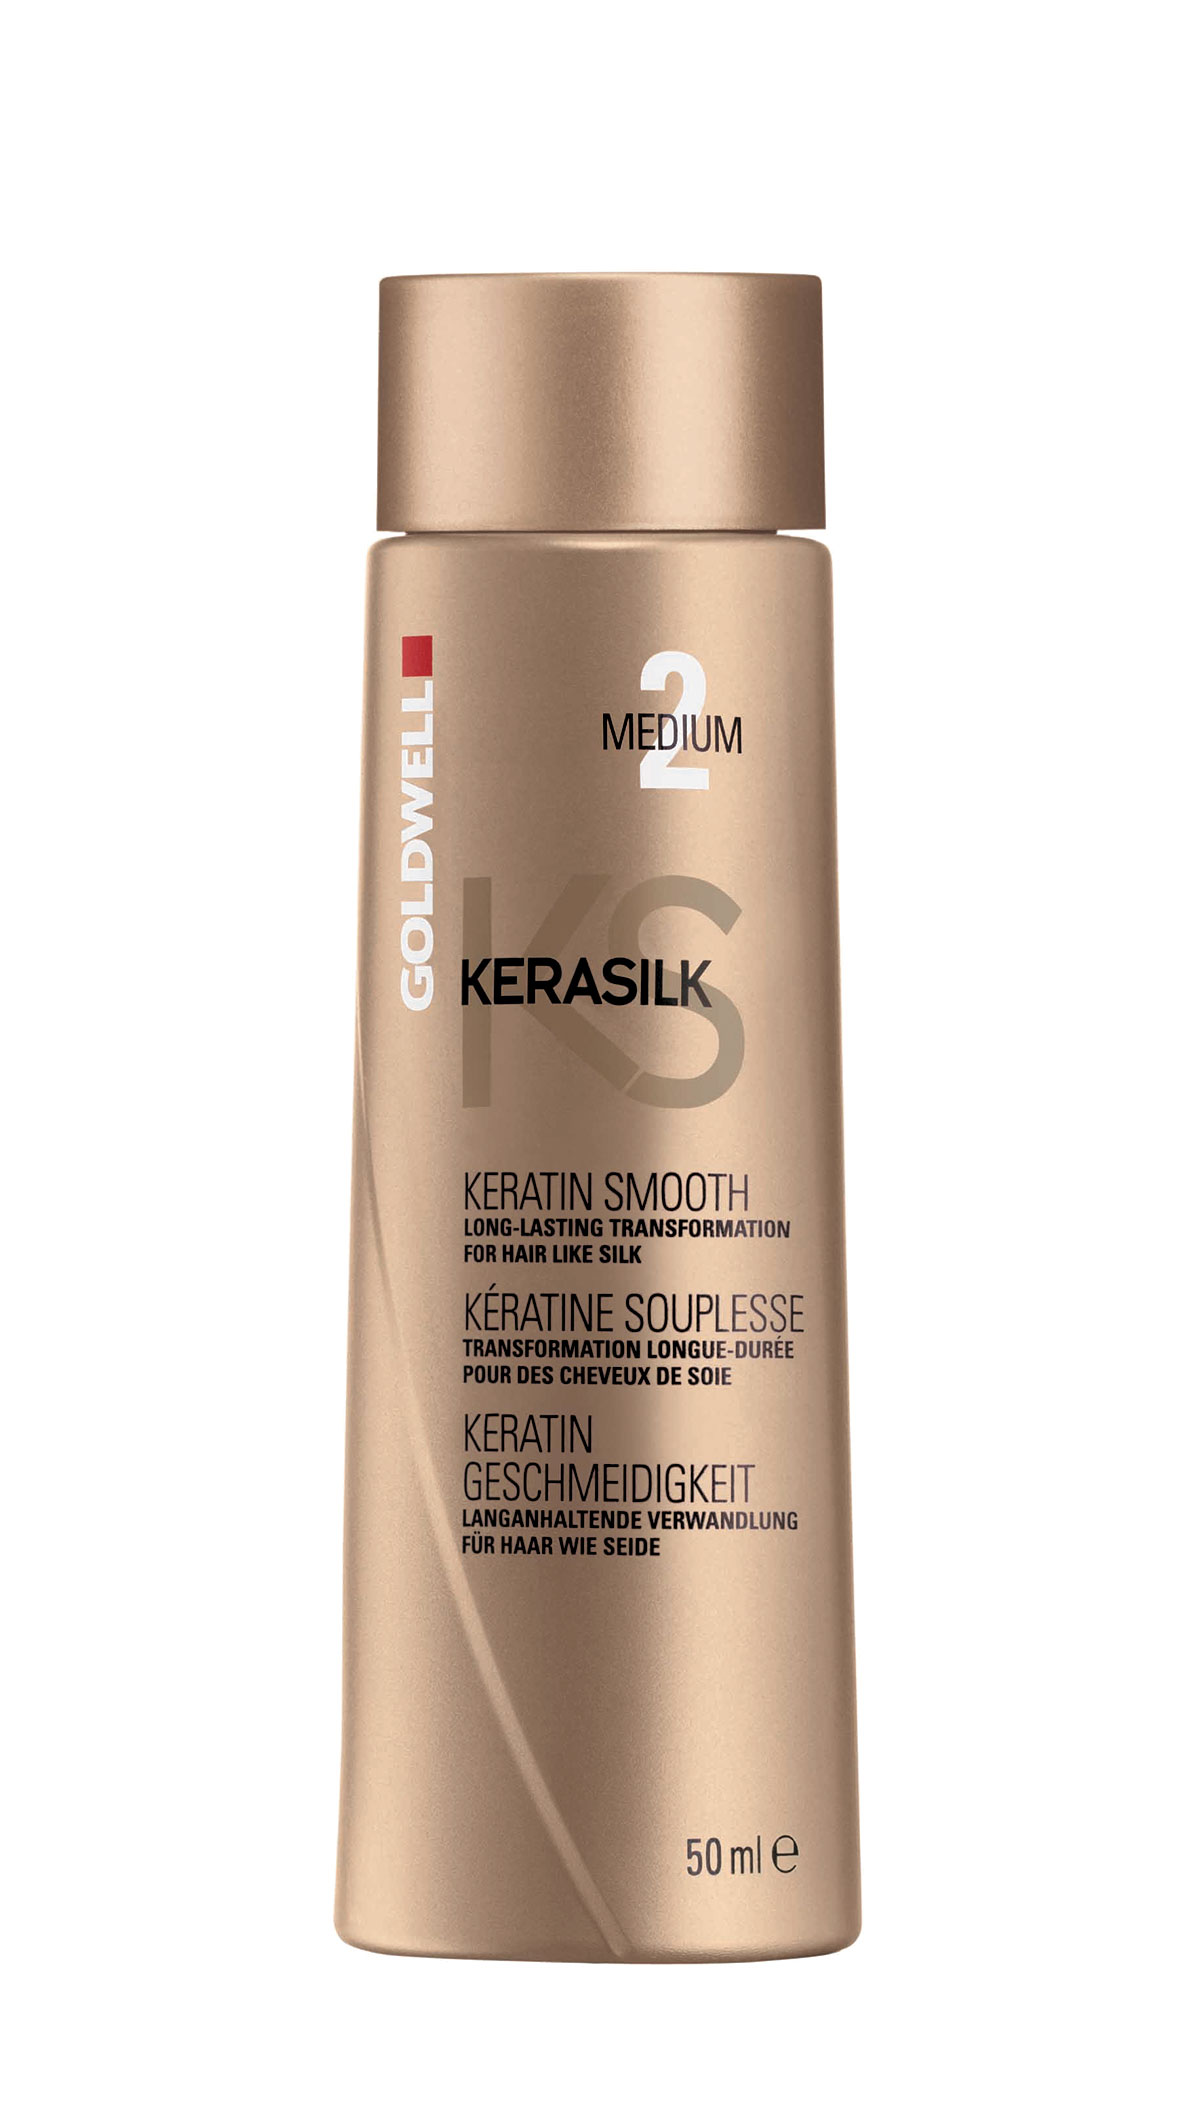 The latest keratin products and treatments for smoothing and straightening american salon - Salon straightening treatments ...